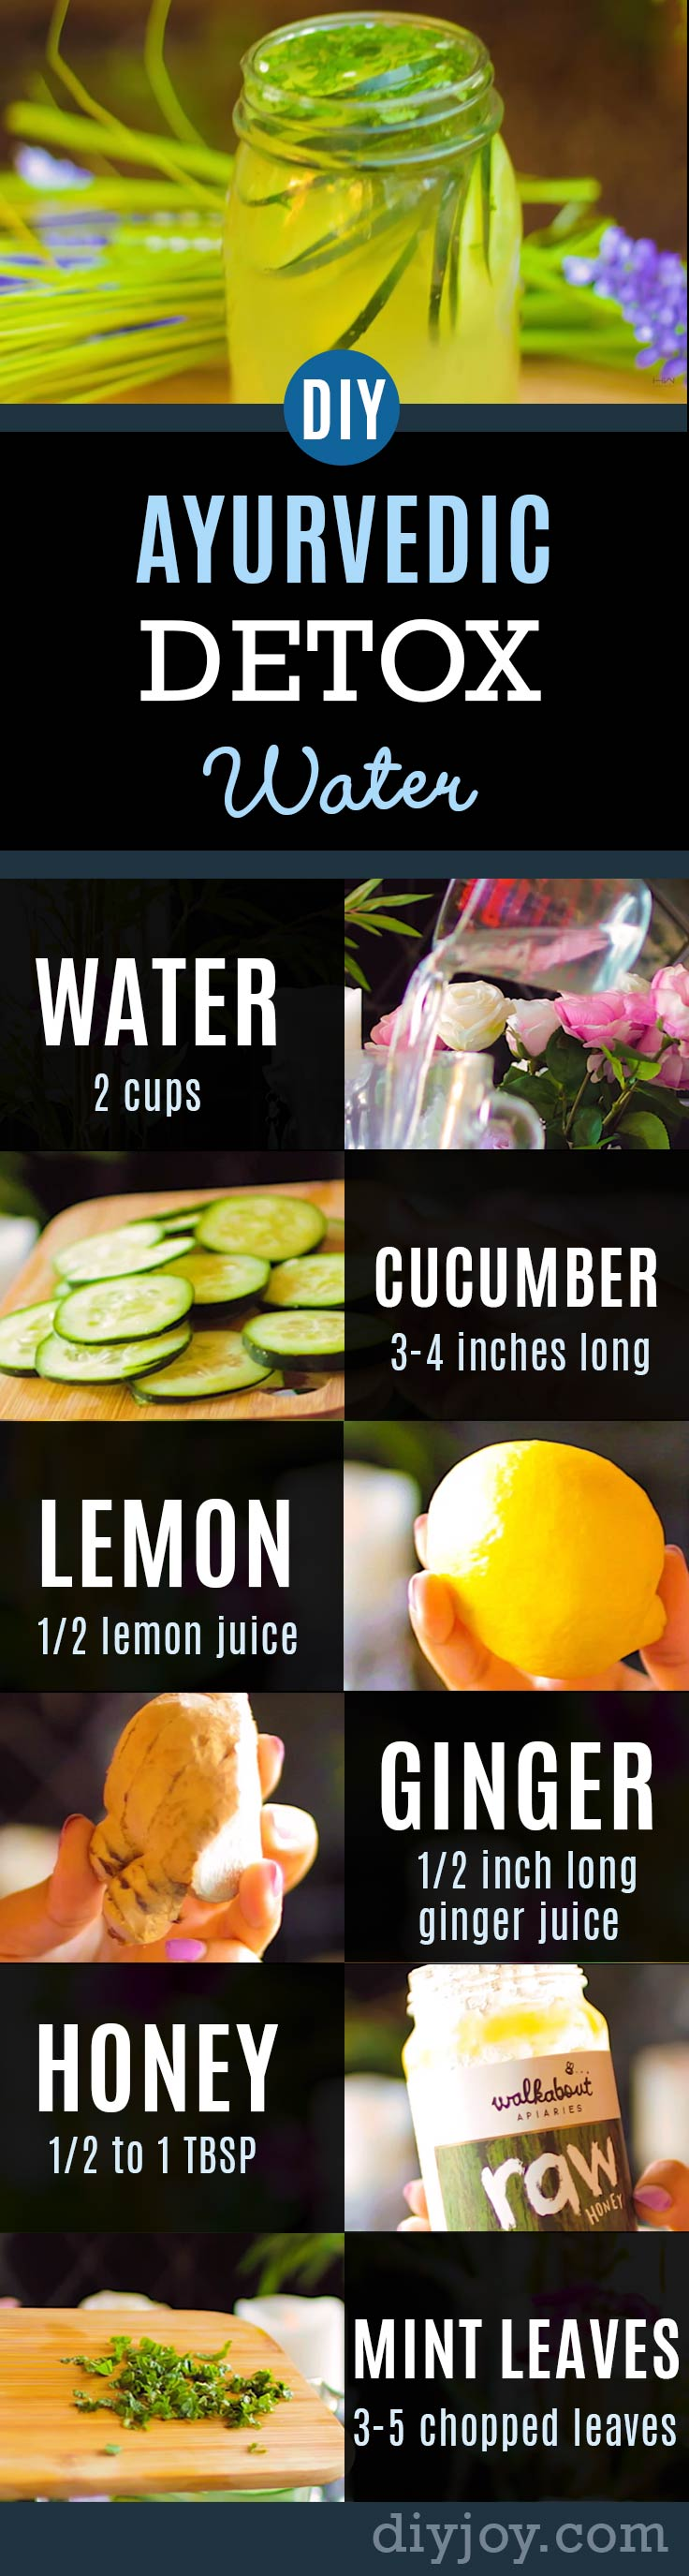 31 Detox Water Recipes for Drinks To Cleanse Skin and Body. Easy to Make Waters and Tea Promote Health, Diet and Support Weightloss | Ayurvedic Detox Water | Weight Loss, Clear Skin, Flat Belly, Anti-Aging Recipe | #detox #recipes #detoxwater #healthy